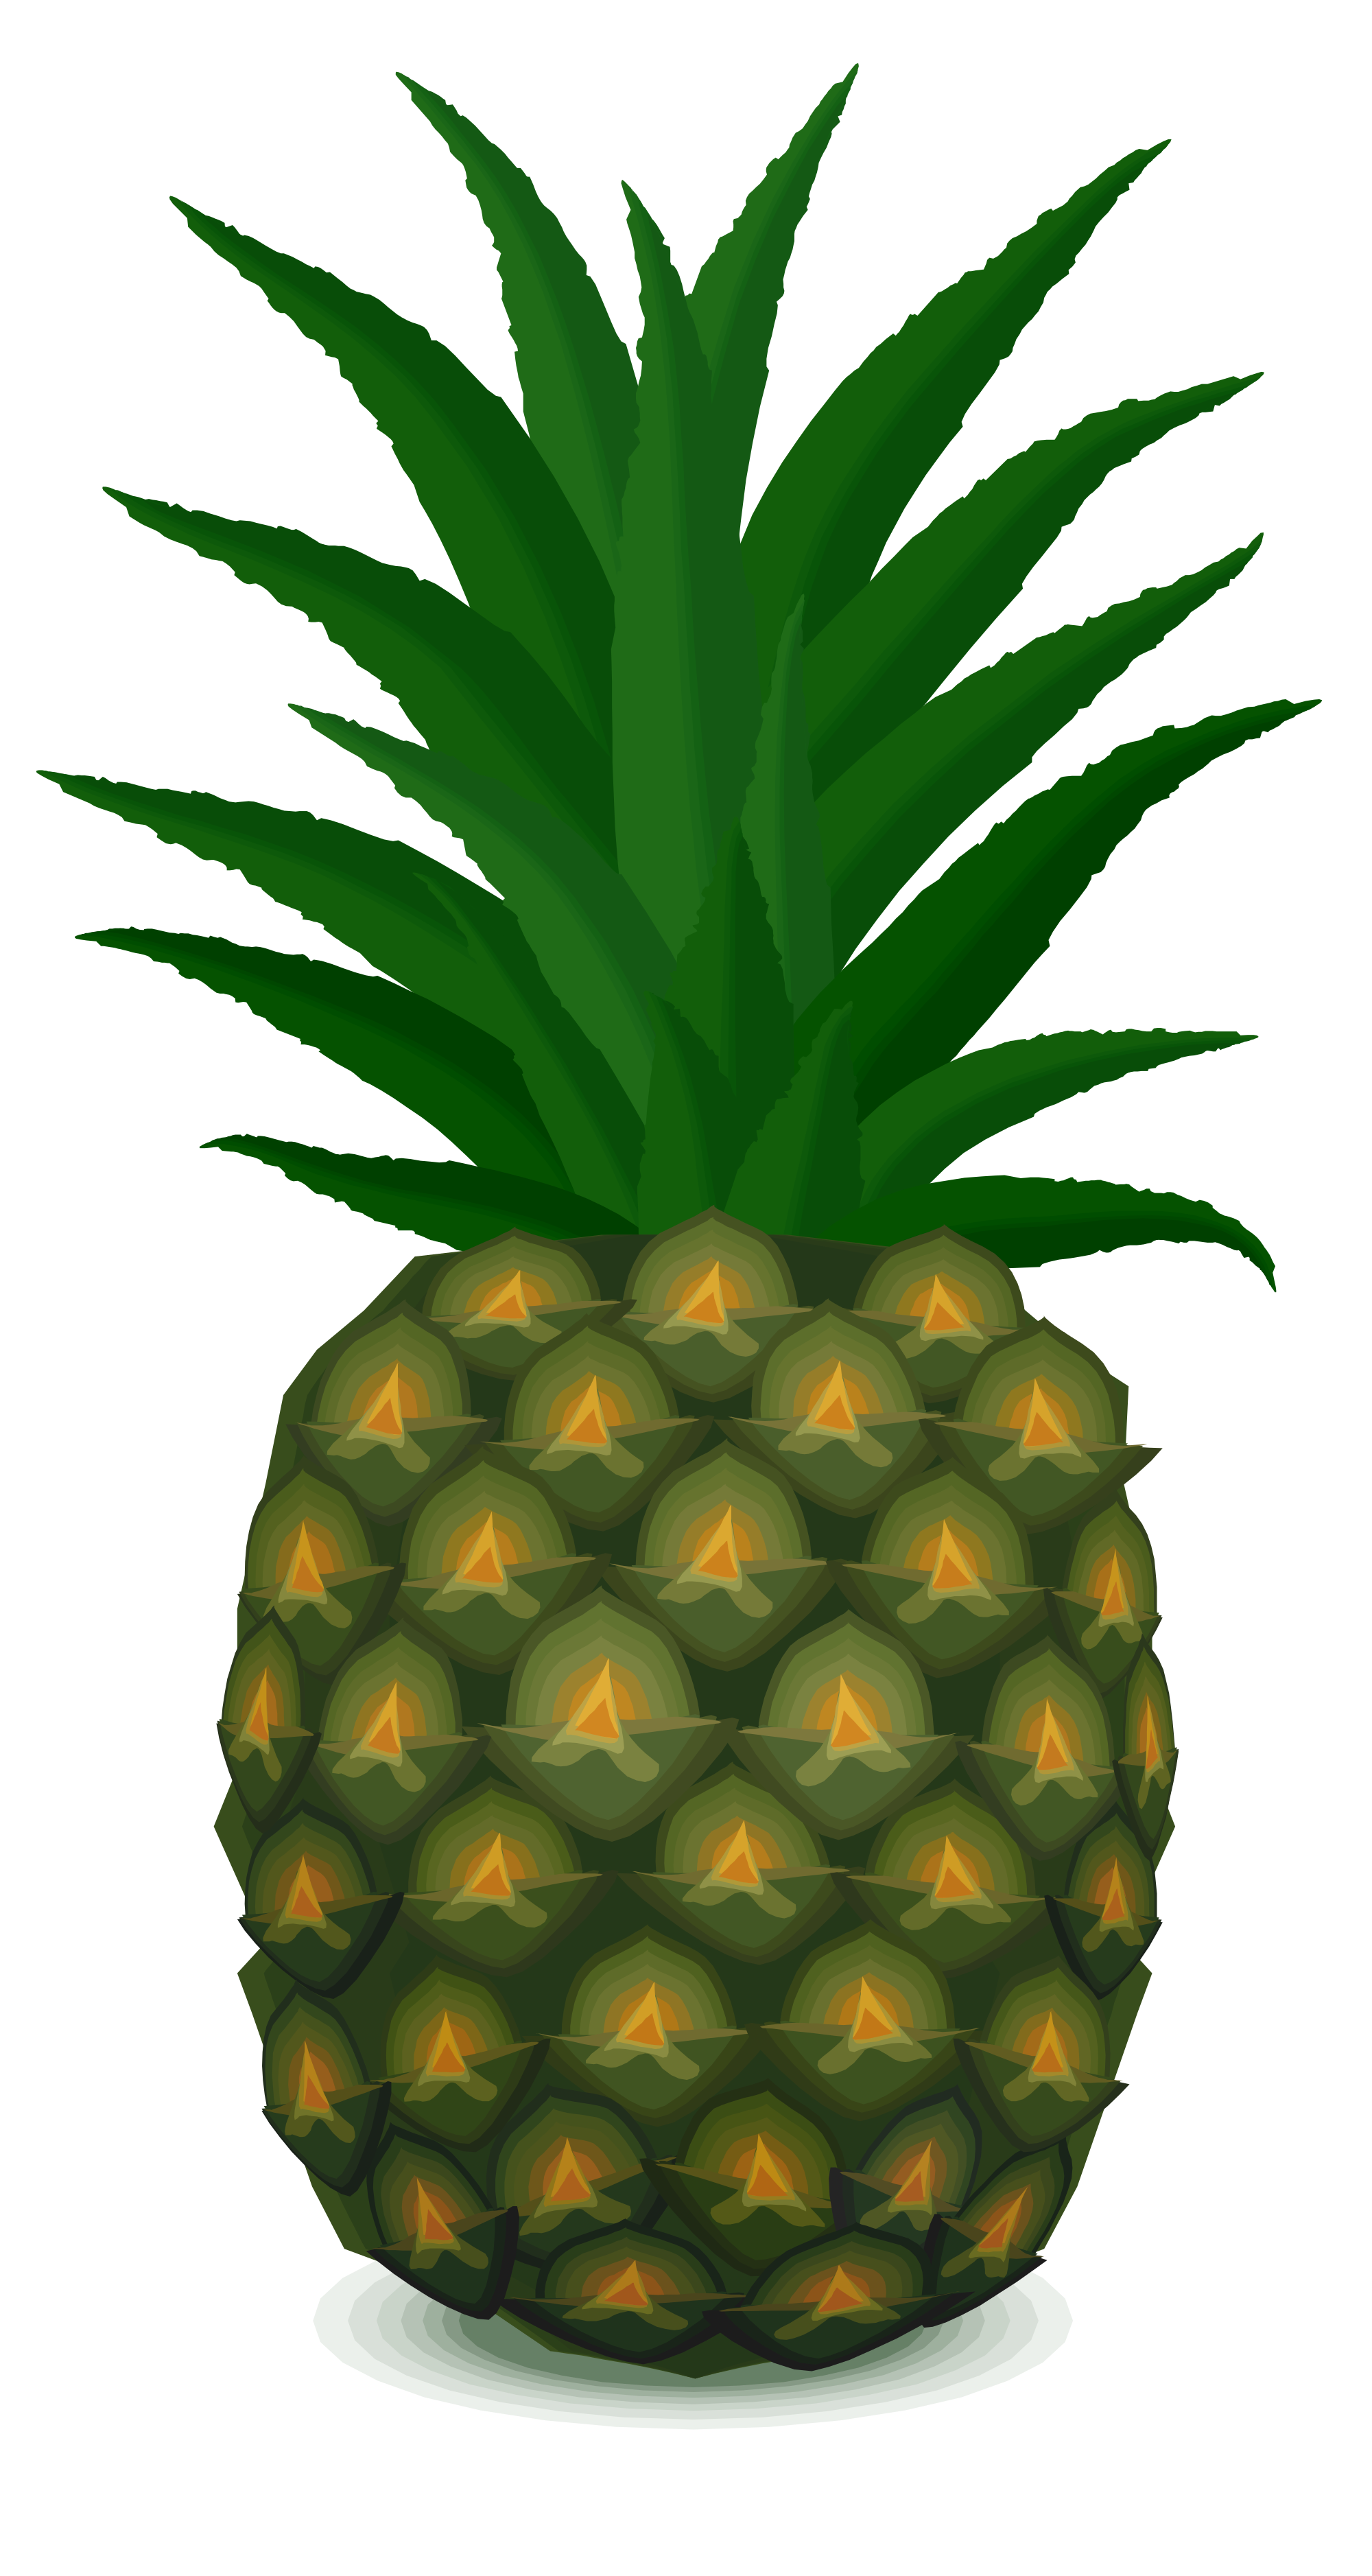 Clipart person pineapple. File svg wikimedia commons